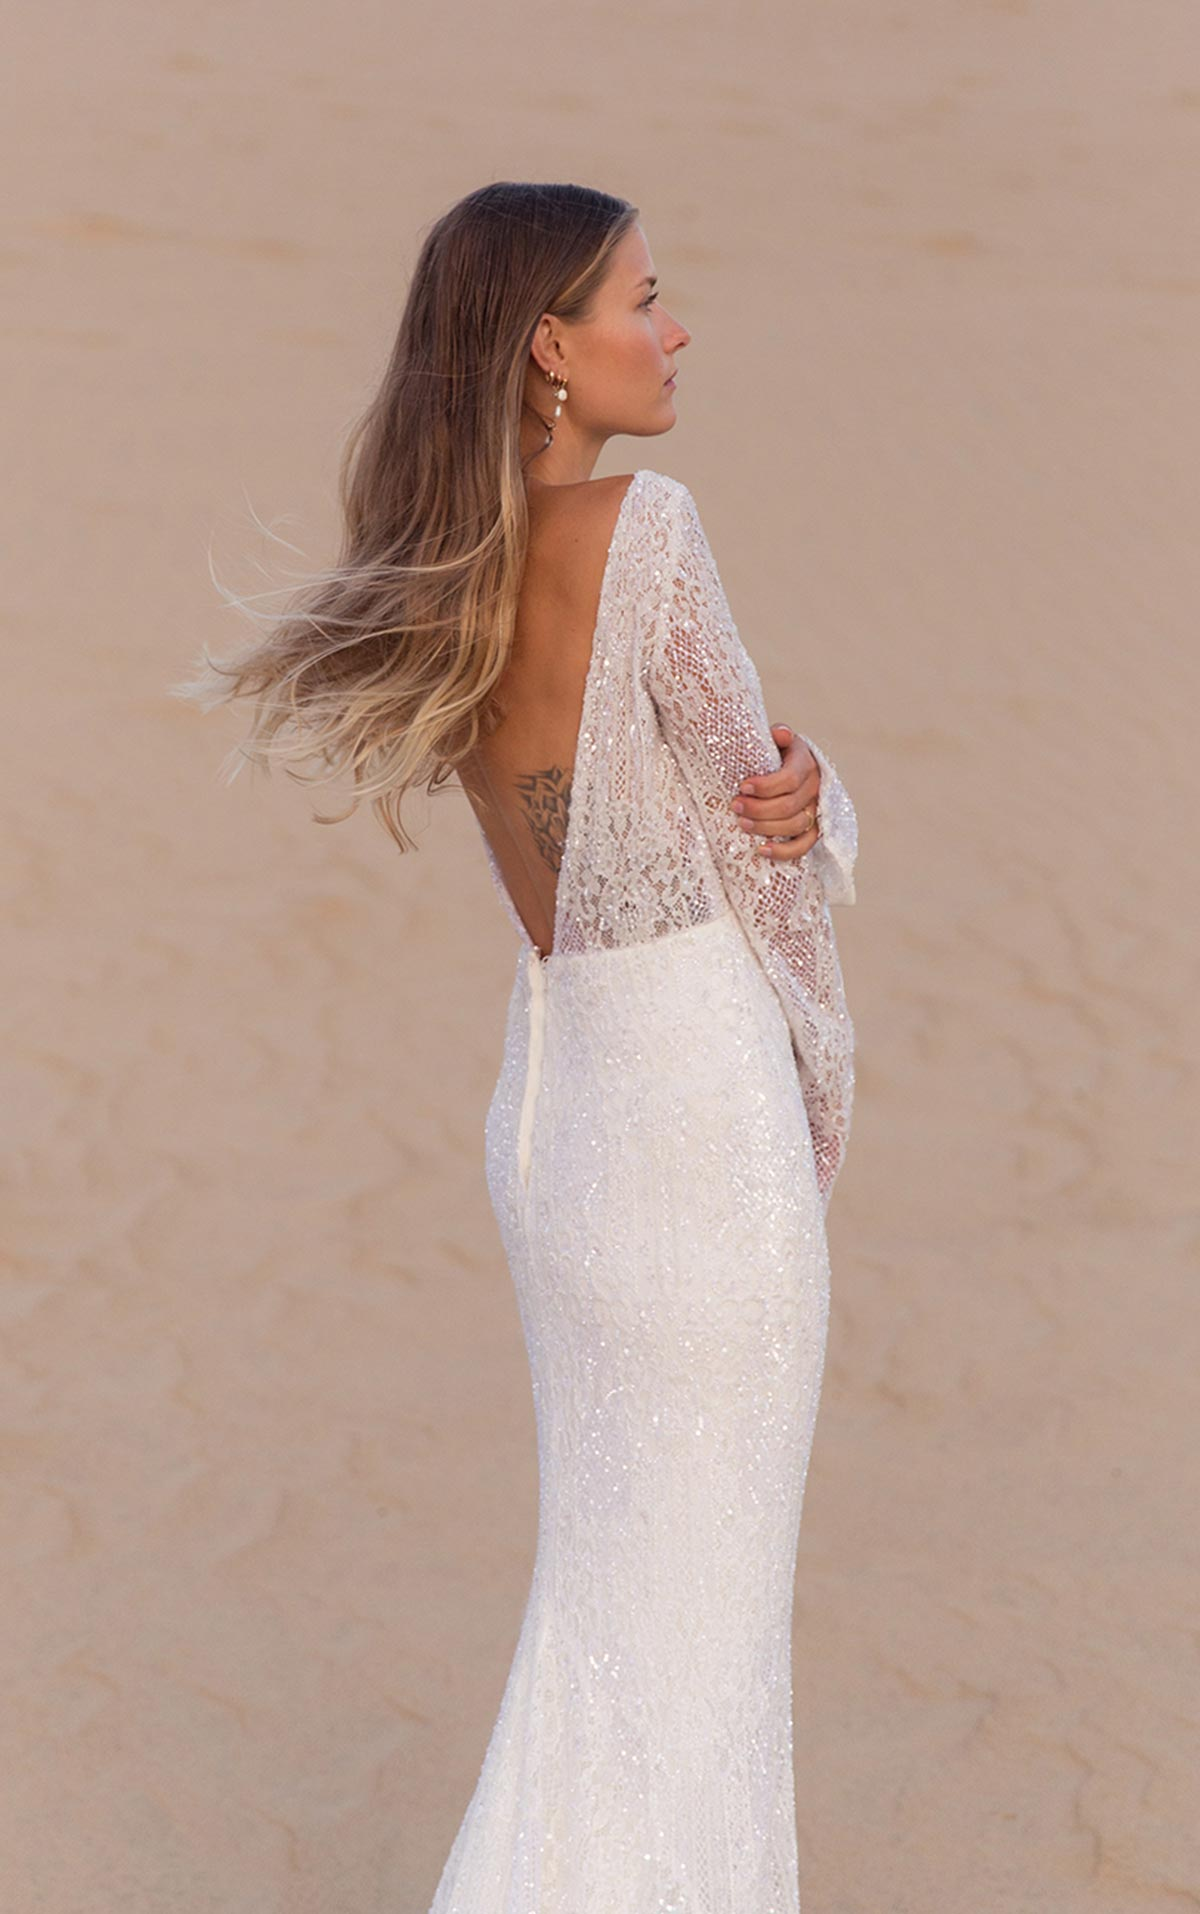 LE1113 Backless Sparkling Lace and Tulle Sheath with Long Sleeves by Martina Liana